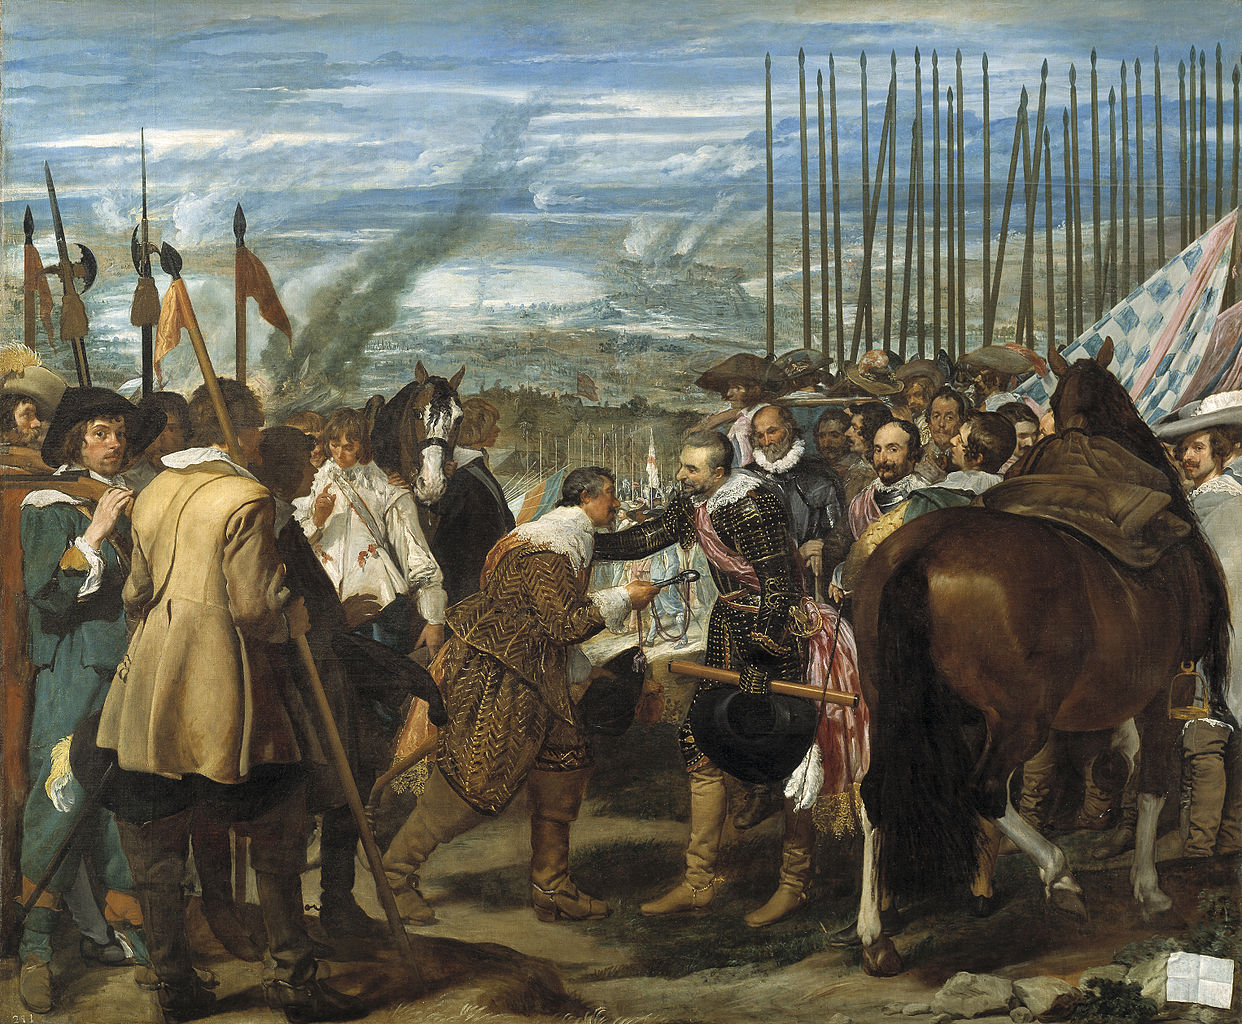 The Surrender of Breda by Diego Velázquez, 1635